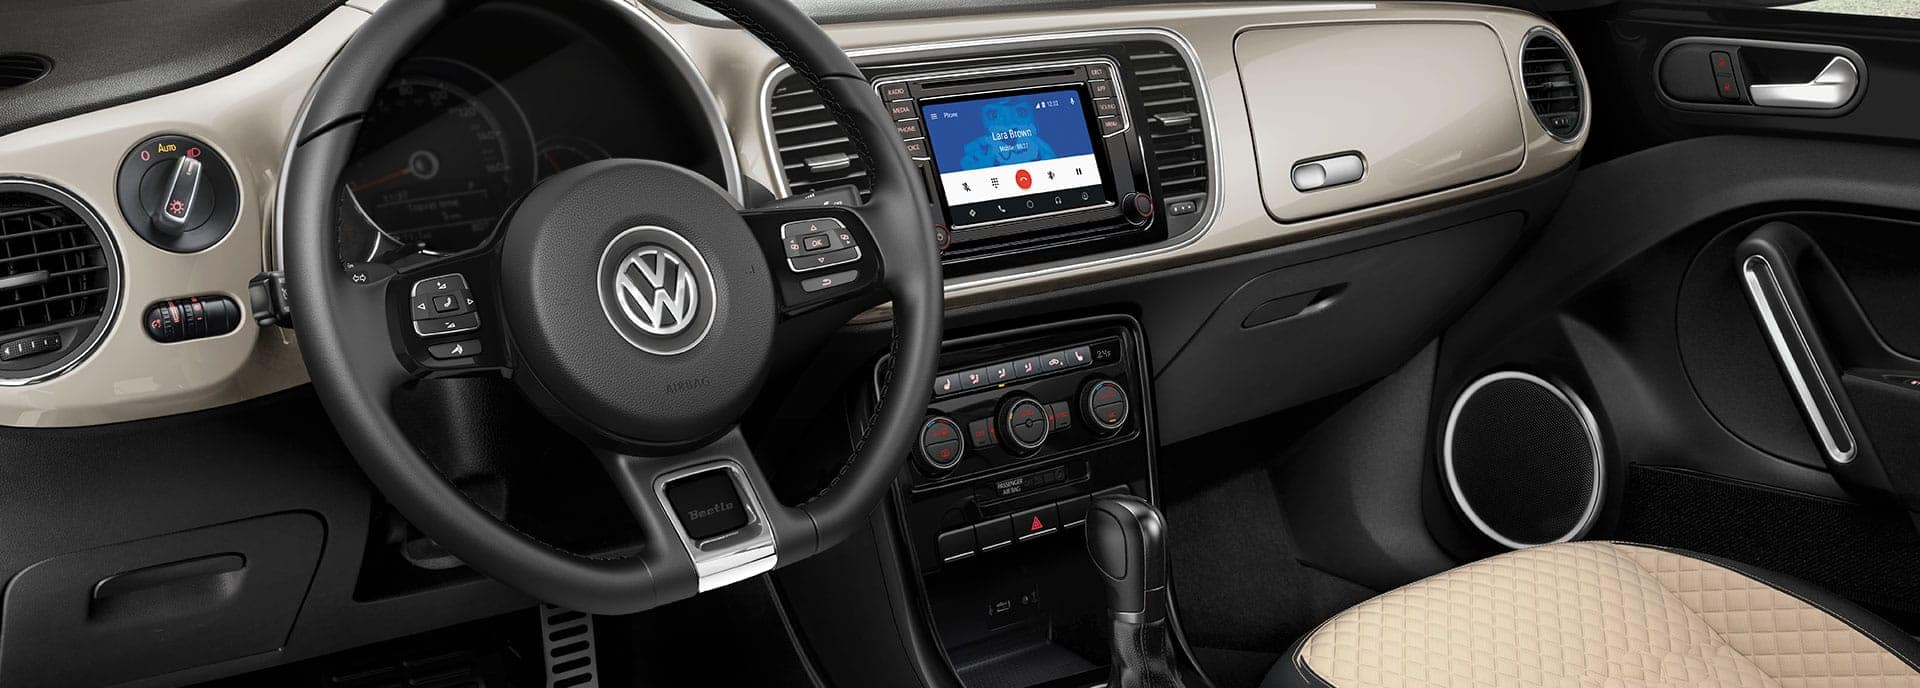 2019 VW Beetle interior